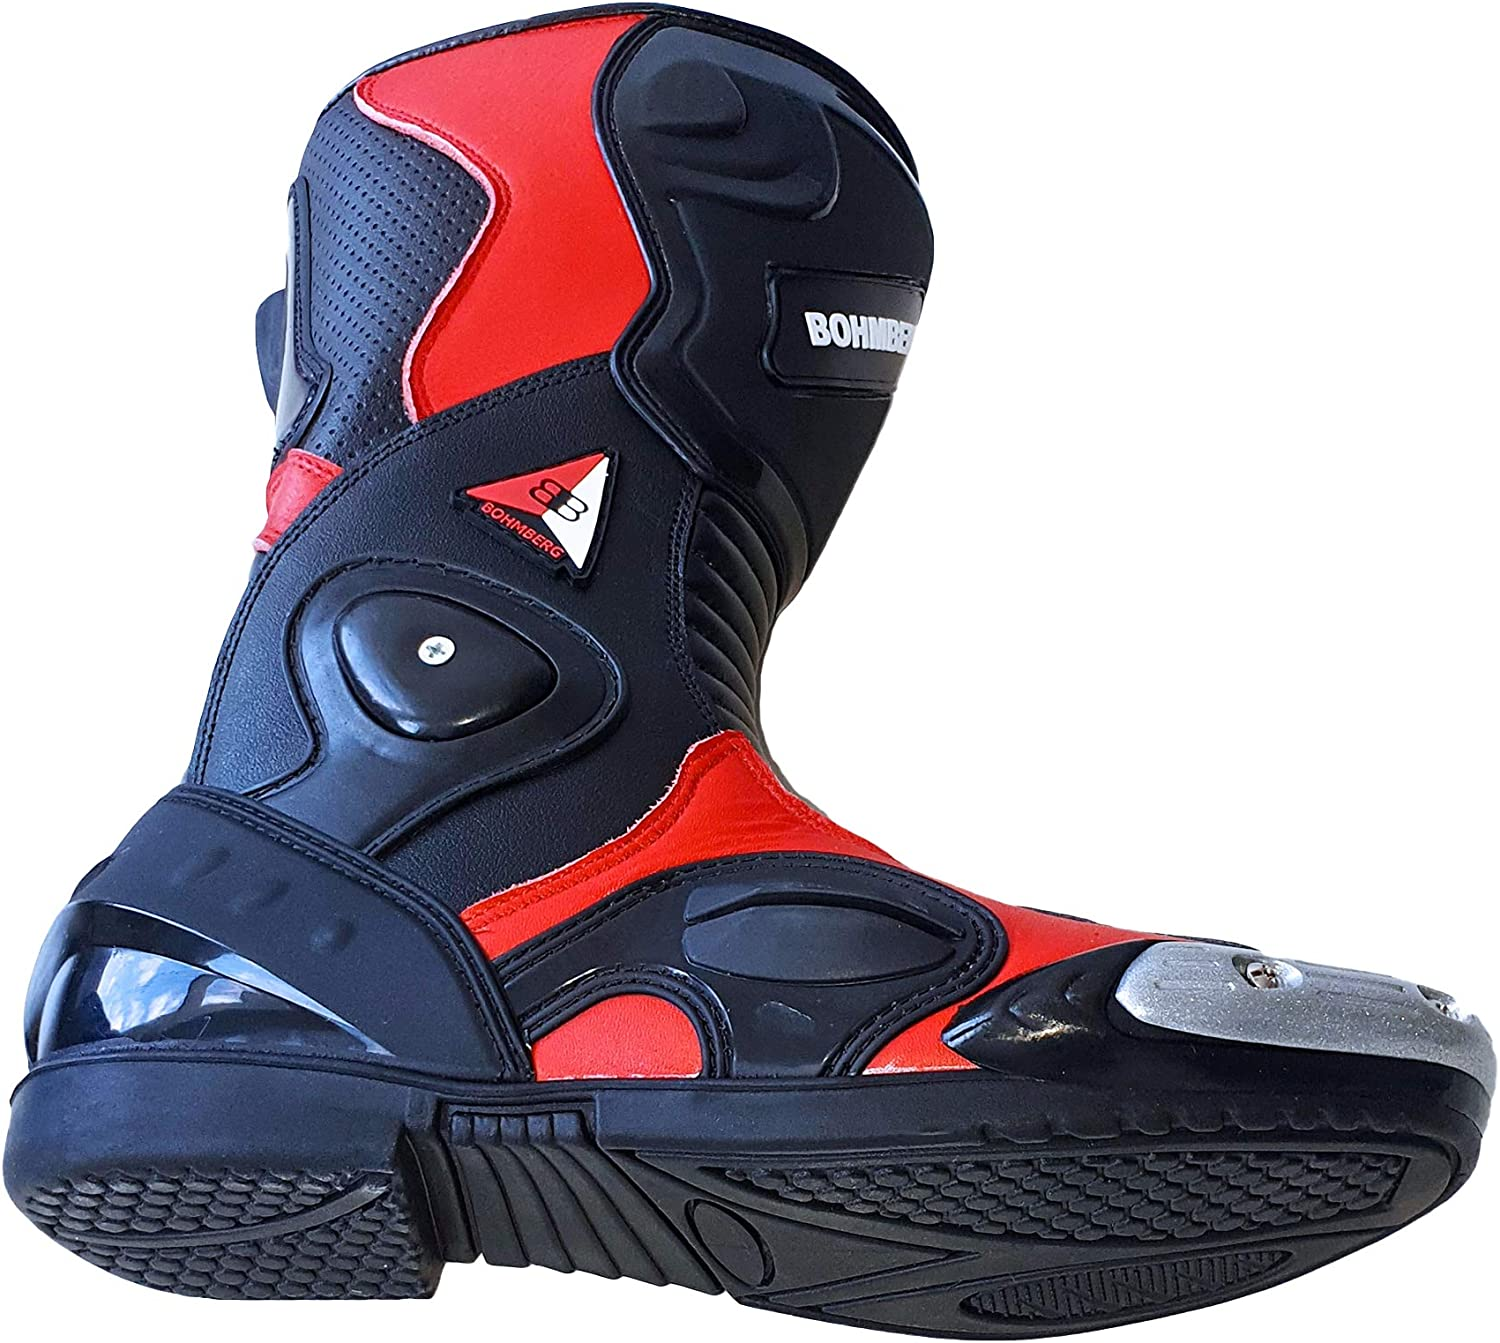 Bohmberg Motorbike Boots Motorcycle Shoes Racing Stylist Ankle Boot Motorcycle Off Road Touring Shoes Waterproof Armoured for Mens Bikers UK 12